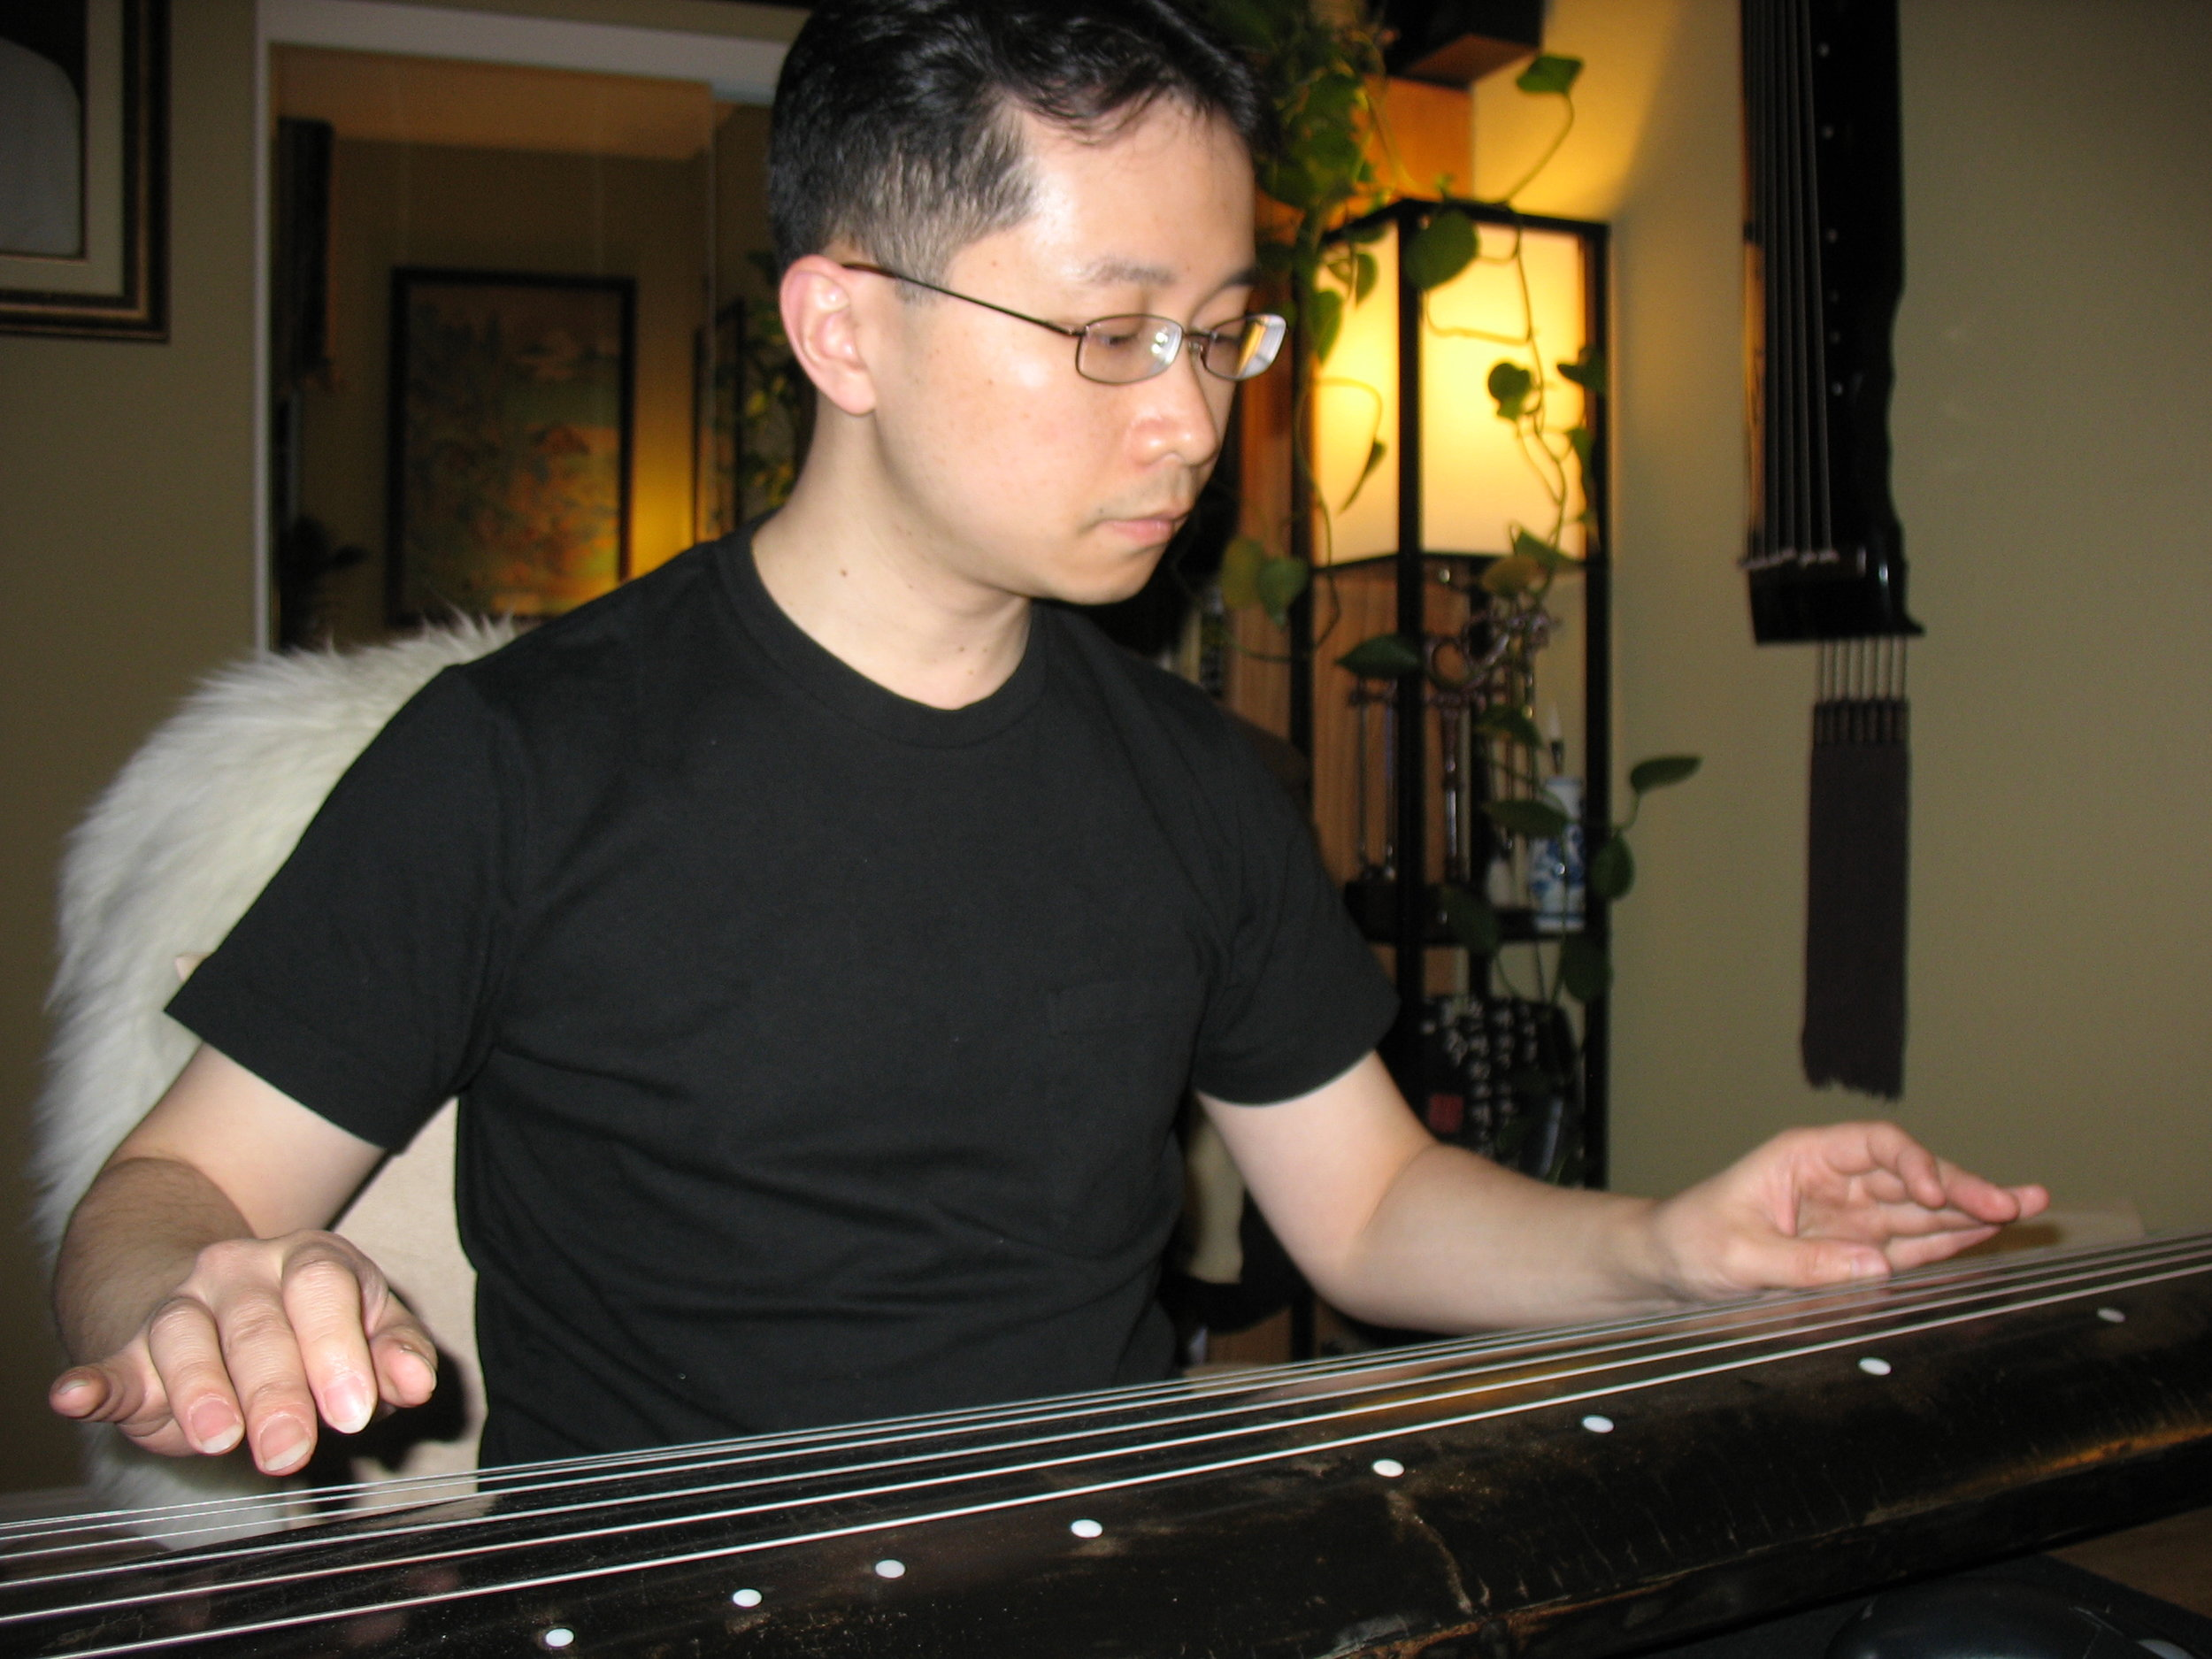 John Guo   A music and art lover, John enjoys playing the guqin and practicing calligraphy in his spare time.  John is a librarian and lives in the Bay Area.